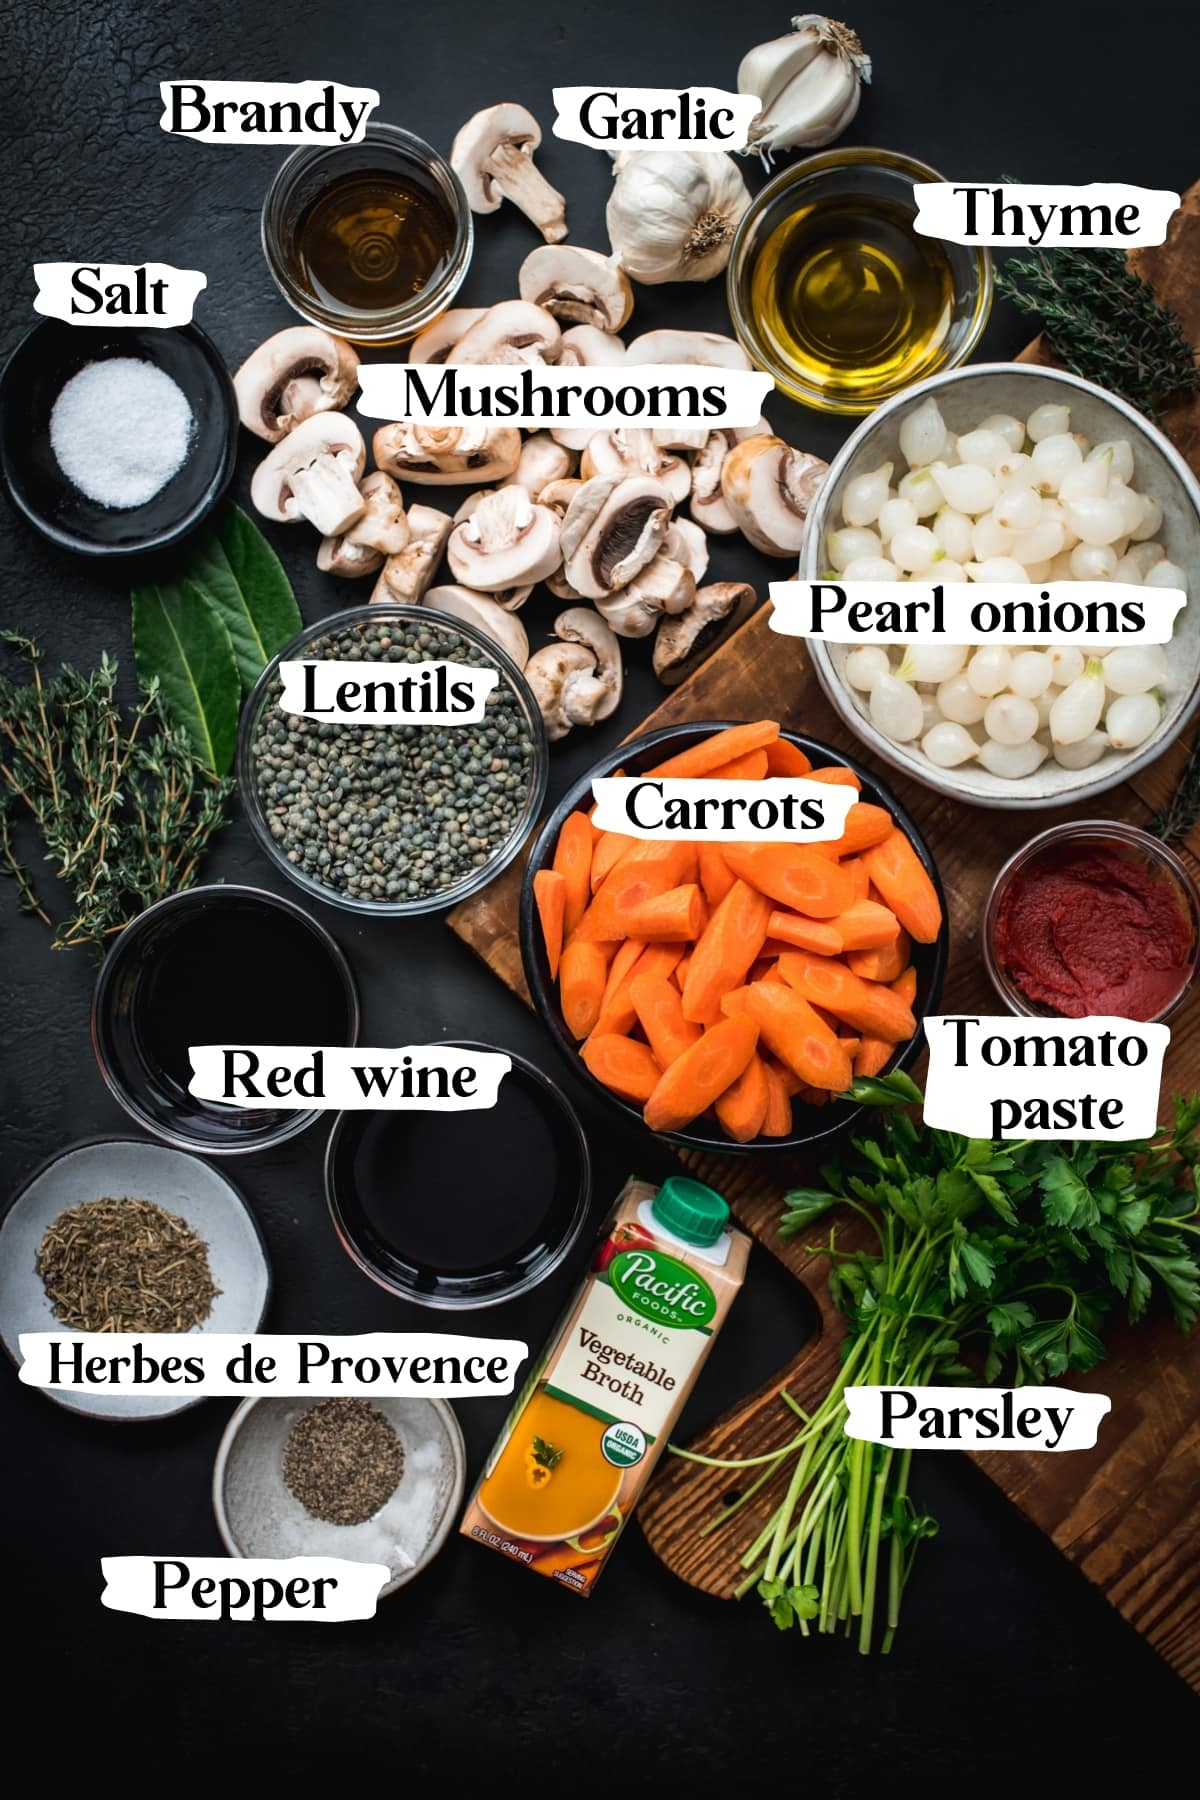 overhead view of ingredients for vegan coq au vin including mushrooms, carrots, pearl onions and wine.